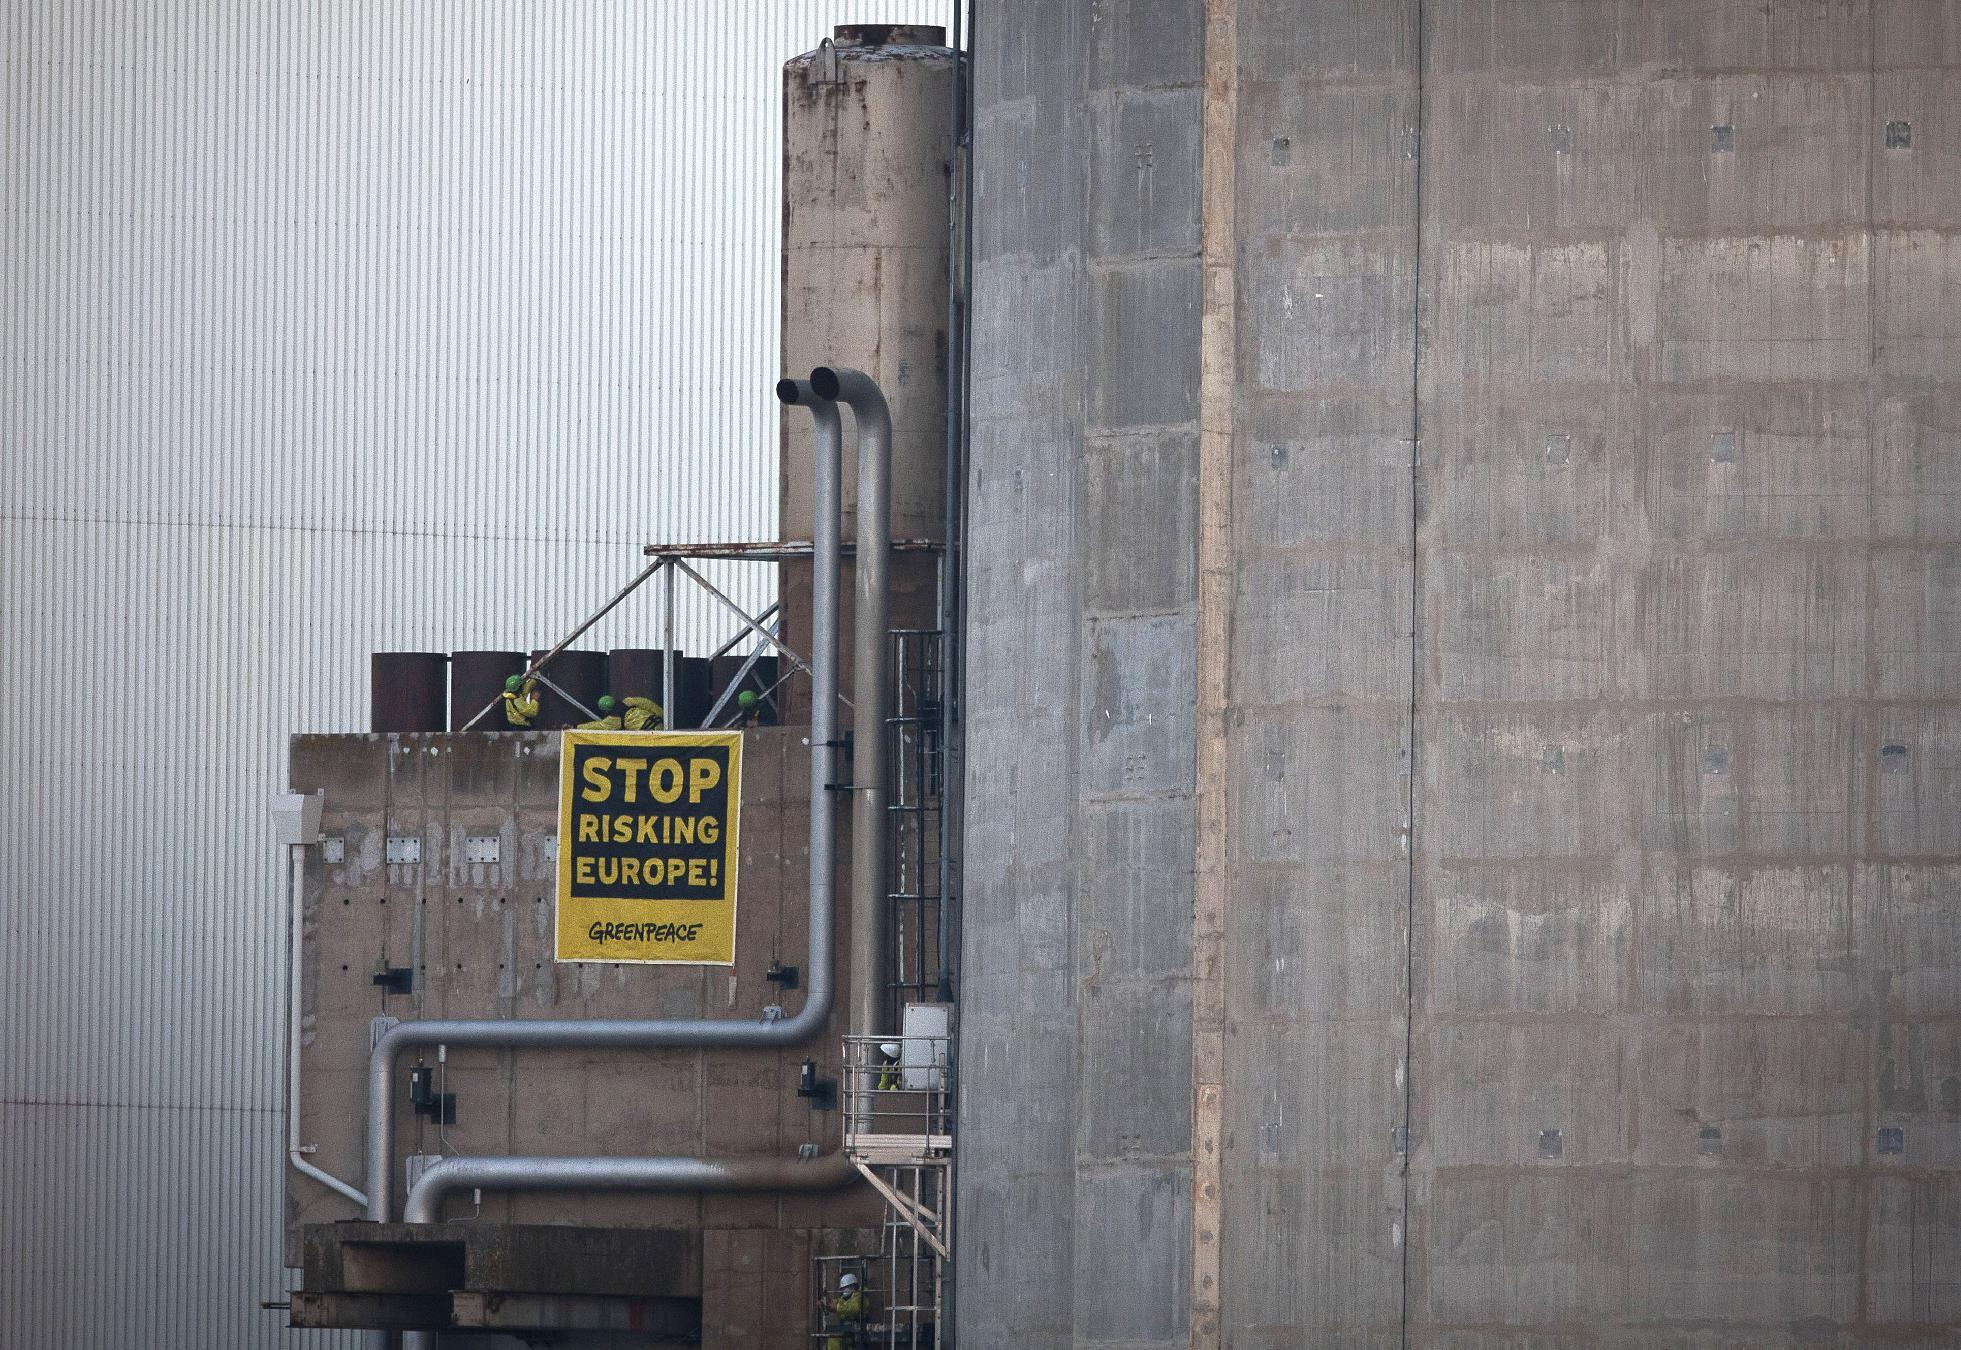 "In this photo provided by environmental group Greenpeace, activisits hang a banner reading ""Stop Risking Europe"" next to one of the reactors at the Fessenheim nuclear power plant, eastern France, Tuesday, March 18, 2014. More than 60 Greenpeace activists have occupied a nuclear plant in eastern France to protest the nation's reliance on atomic power. In a statement Greenpeace France said the activists had come from 14 countries across Europe ""to denounce the risk to Europe from France's nuclear power,"" and to promote a transition to other energy sources. (AP Photo/Greenpeace, Daniel Mueller)"